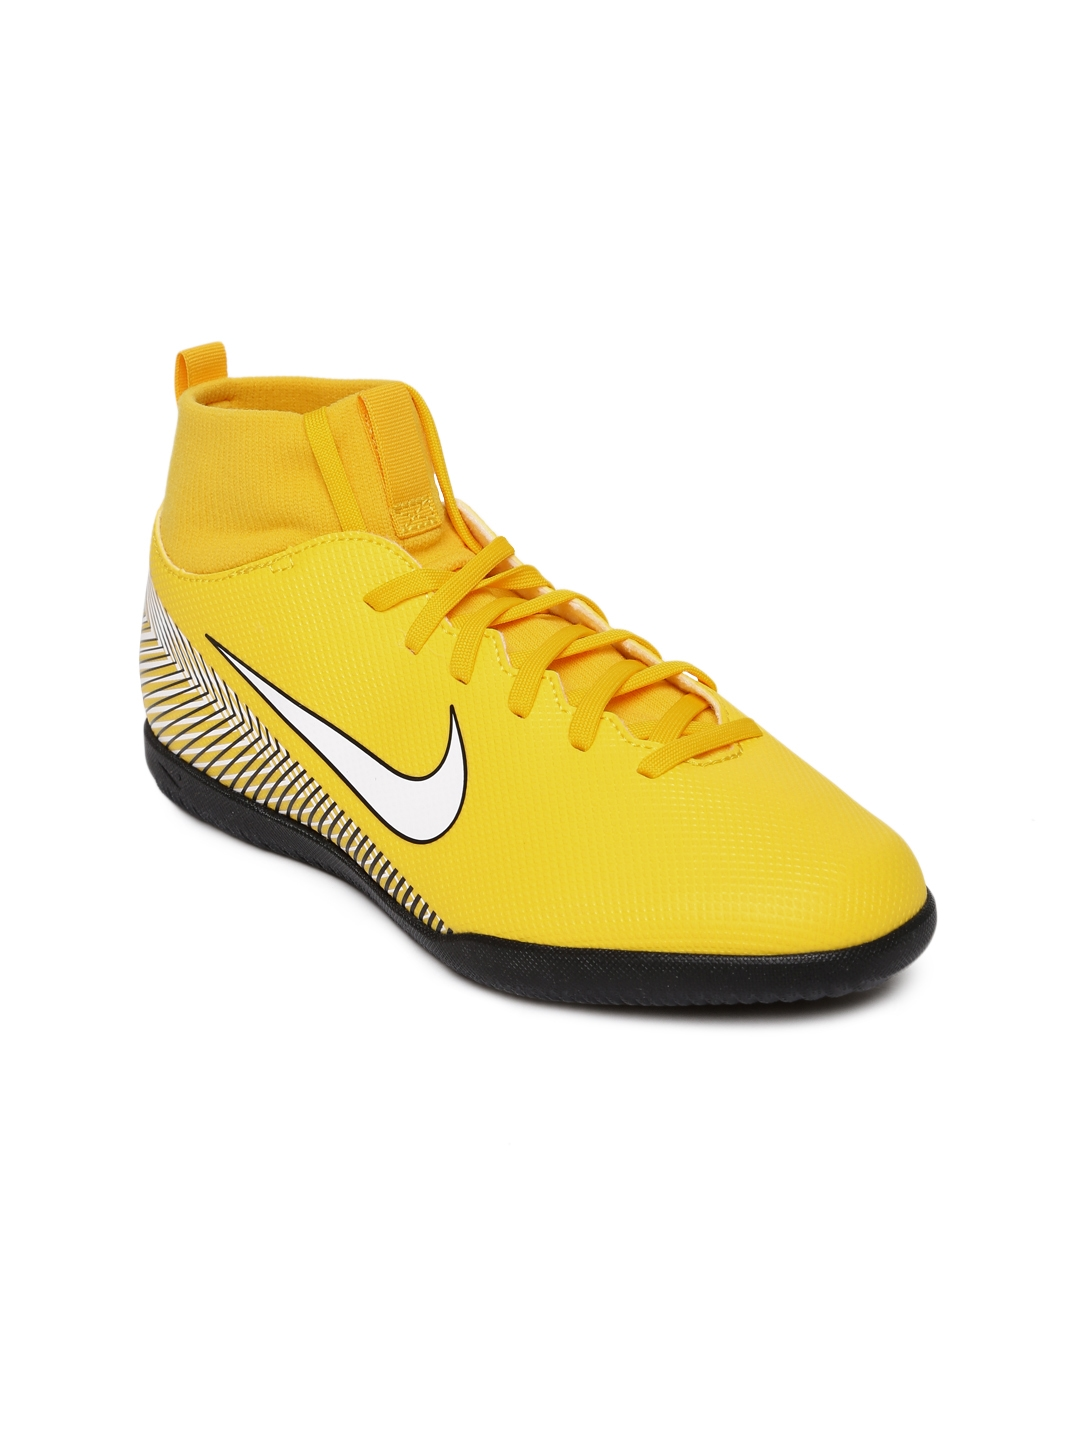 9b6da1963 Buy Nike Kids Yellow Neymar SuperflyX 6 Club IC Football Shoes ...